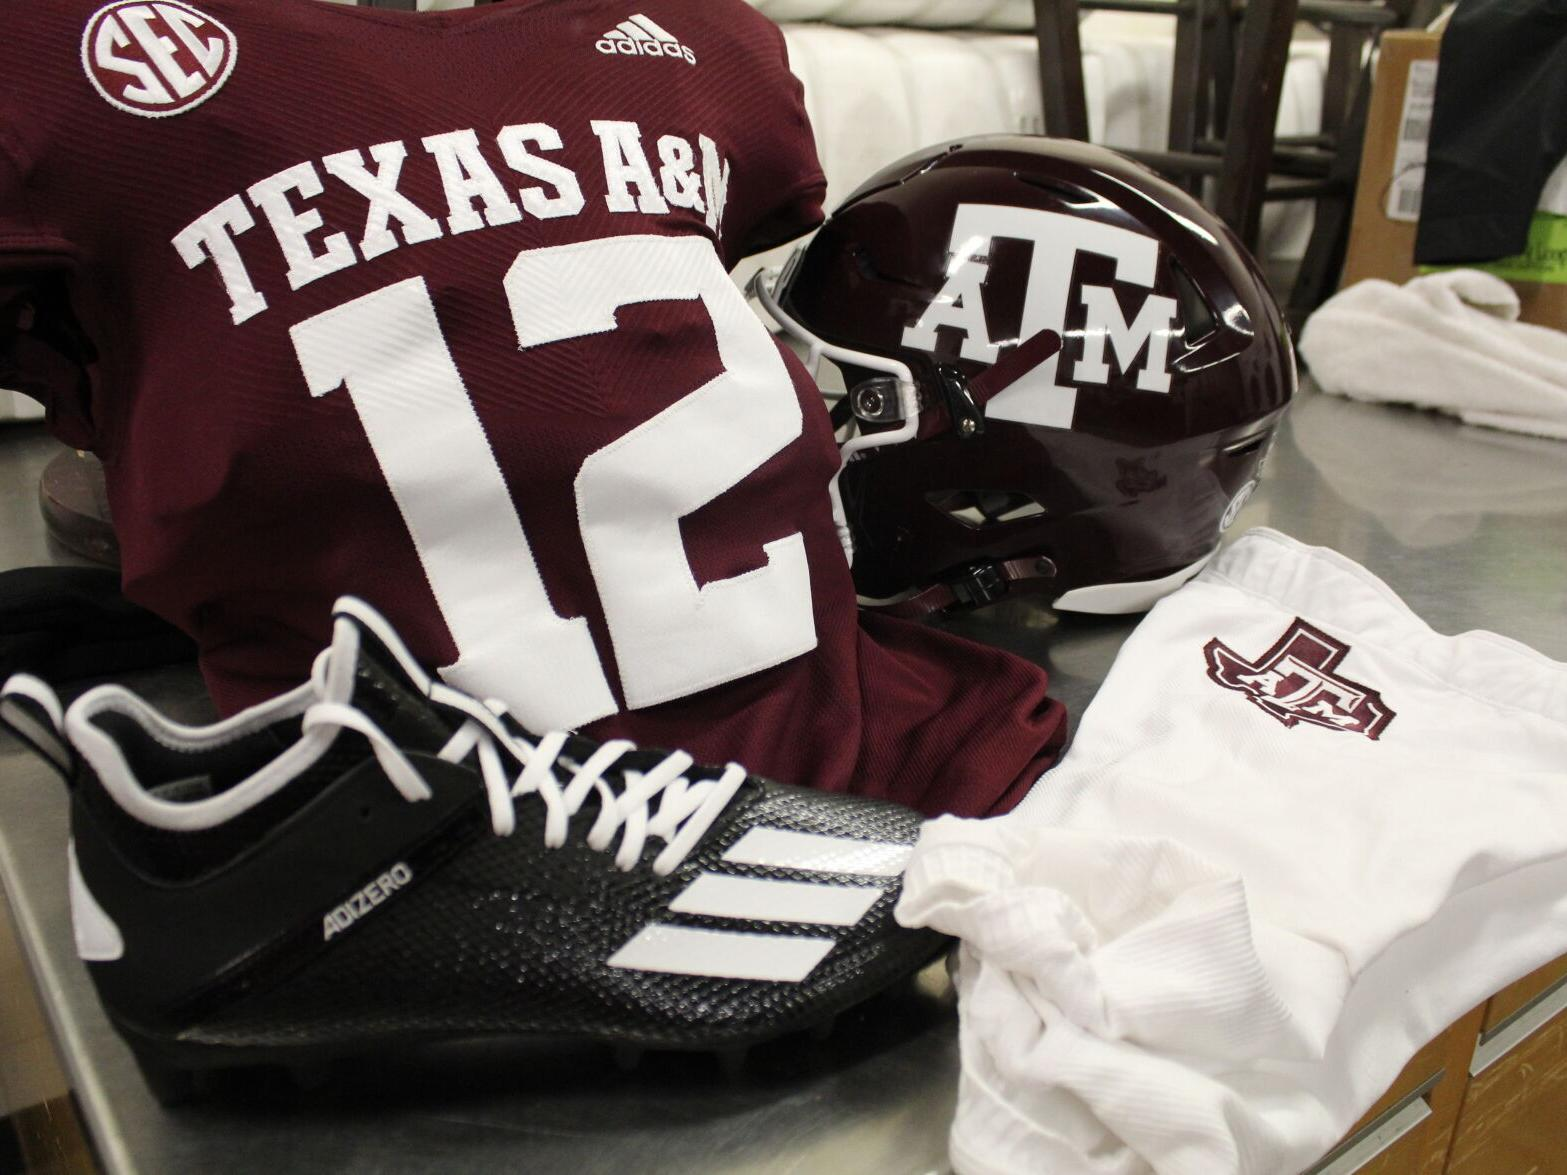 Texas A M S New Football Uniforms Call Back To Classic Look From 1980s And 90s Sports News Theeagle Com